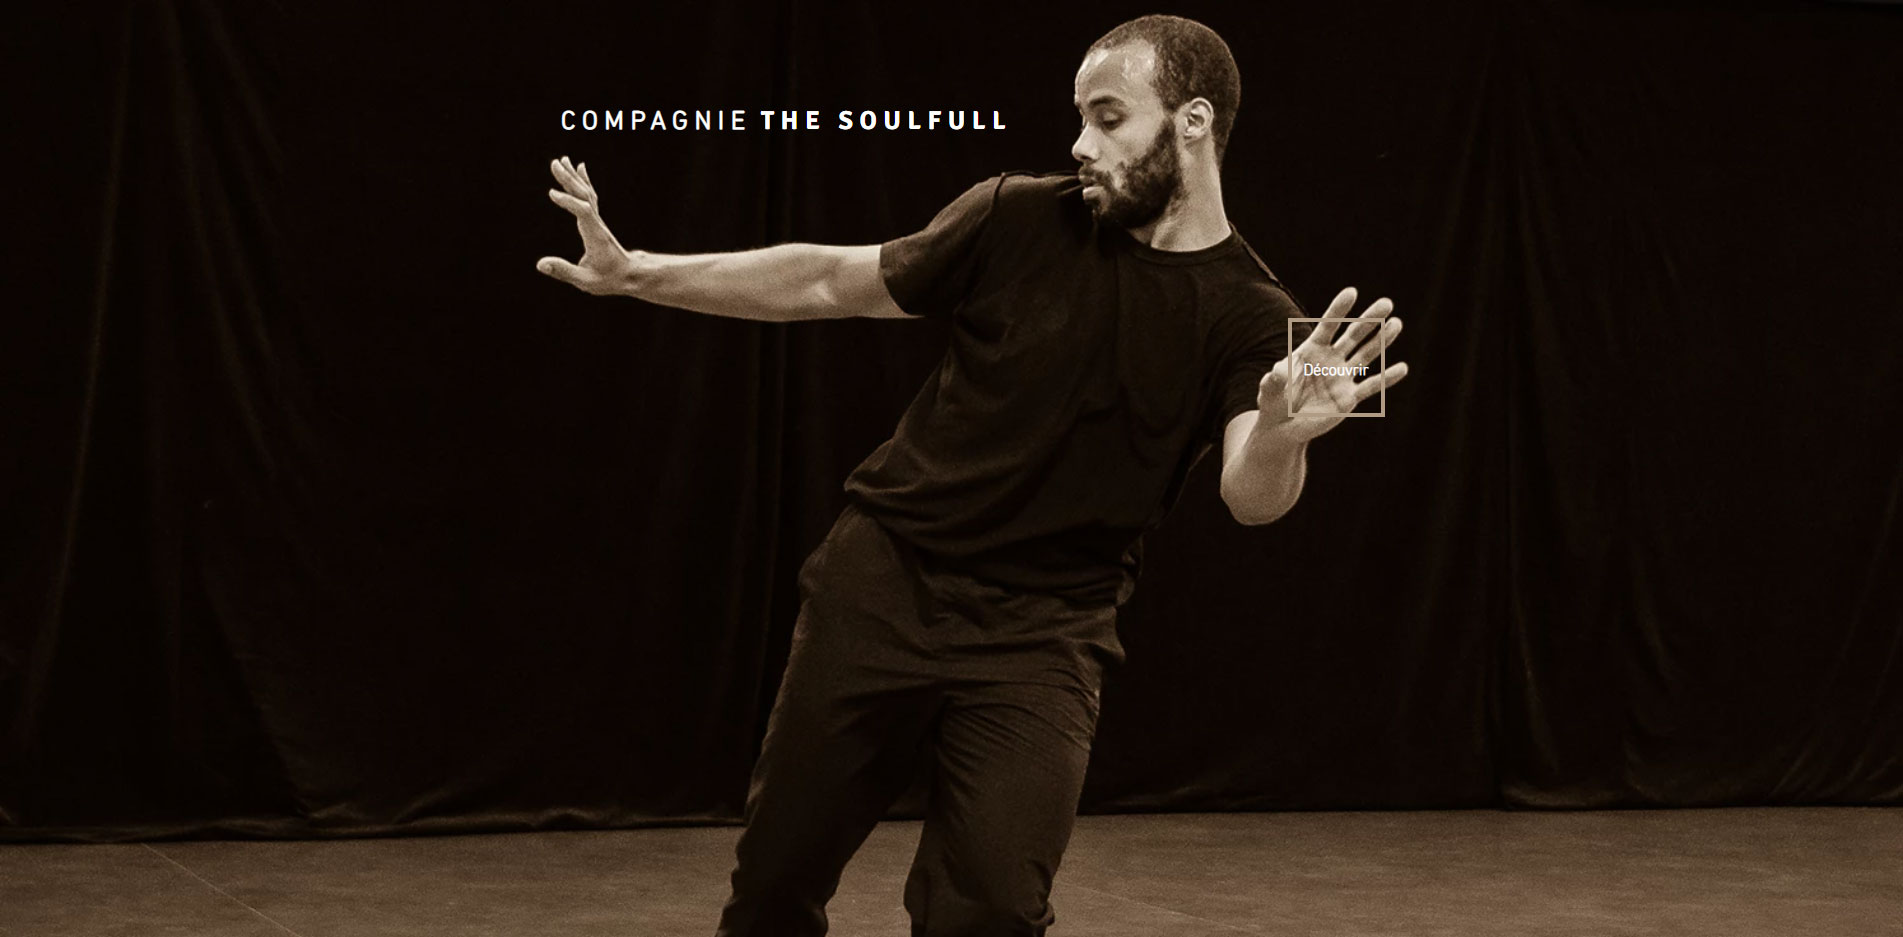 Page d'accueil site web Compagnie The Soulfull